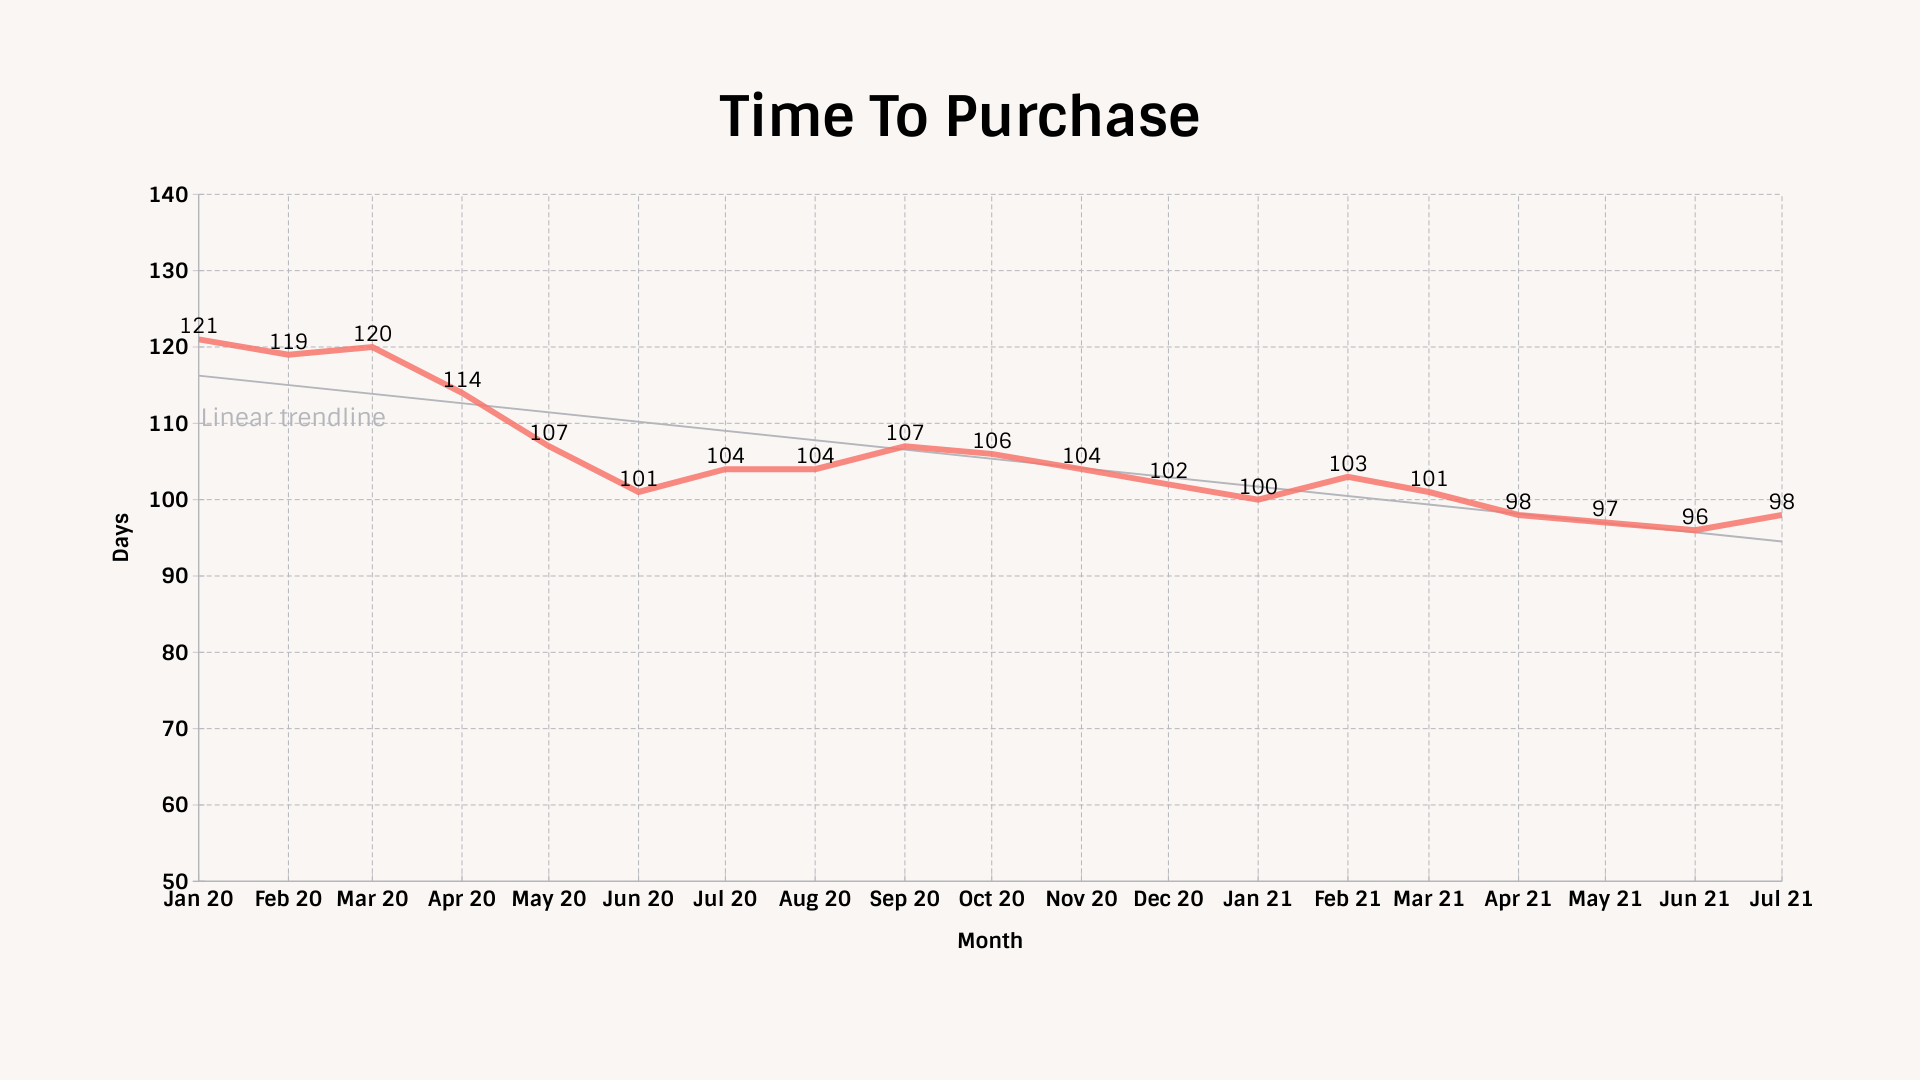 Technometrica auto demand index: tracking poll Time to purchase, january 2020 - july 2021